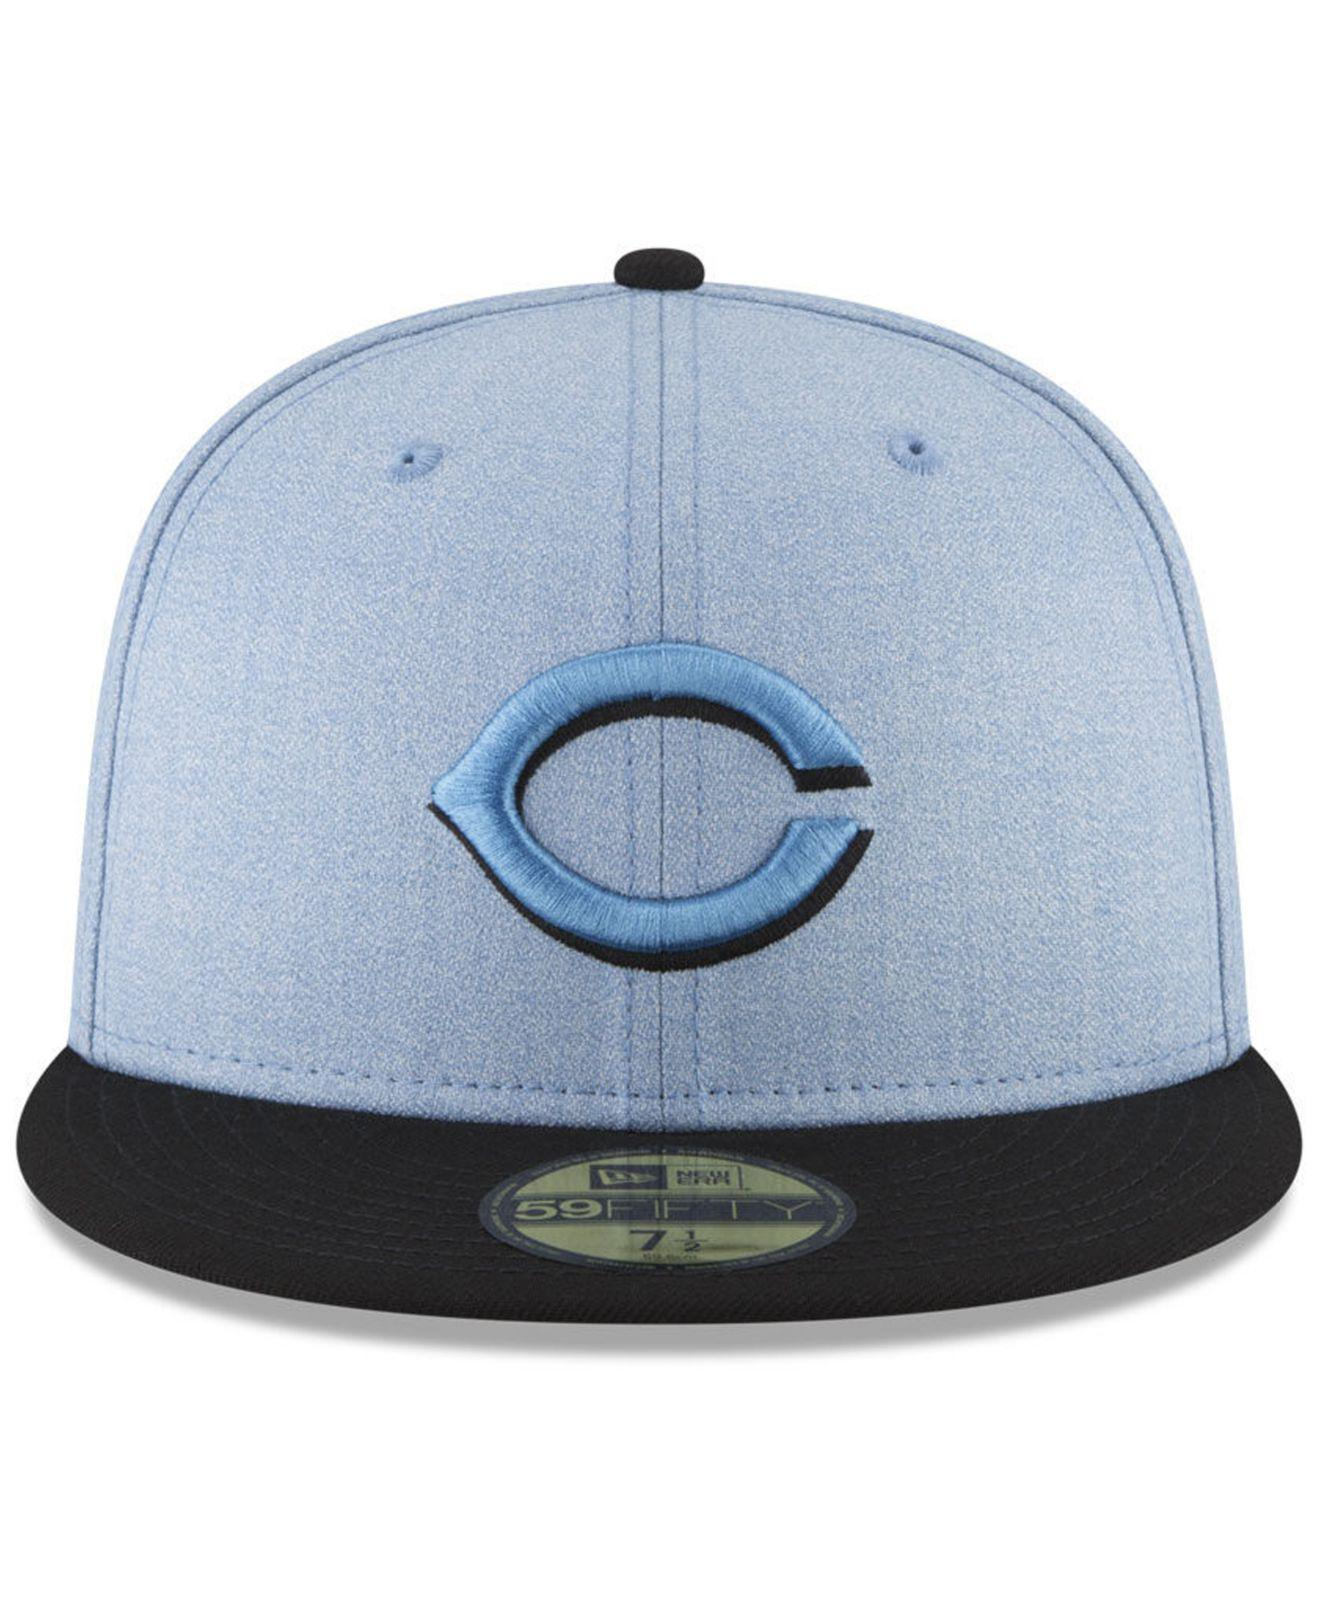 more photos 0acee f07d0 ... coupon code lyst ktz cincinnati reds fathers day 59fifty fitted cap  2018 in blue for men